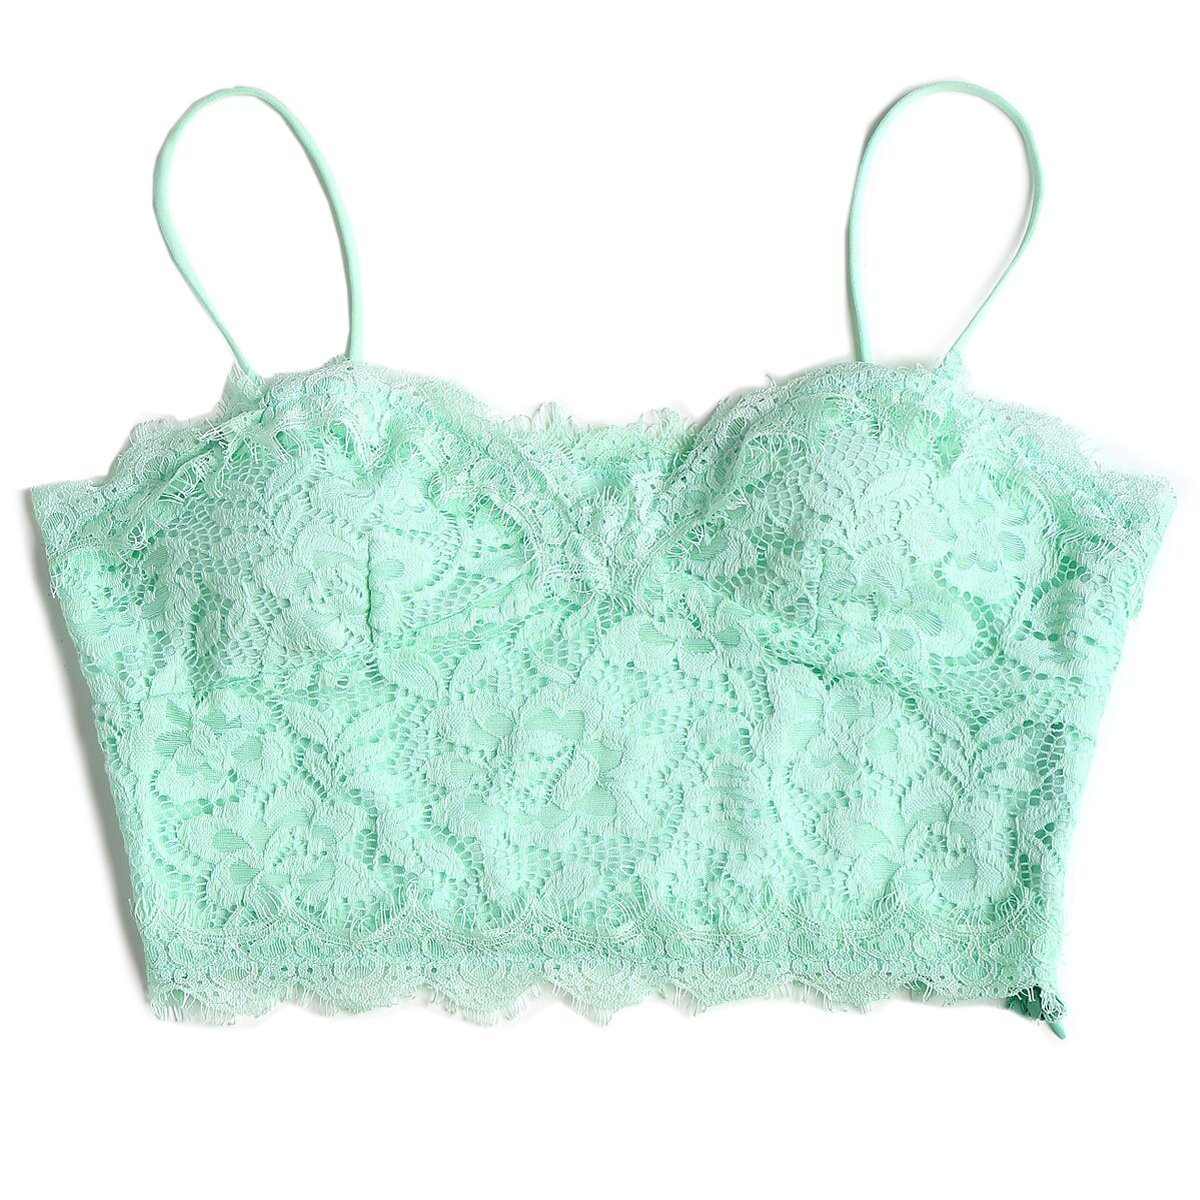 481521f0ce5de2 Top 10 wholesale Lace Crop Top Cami - Chinabrands.com